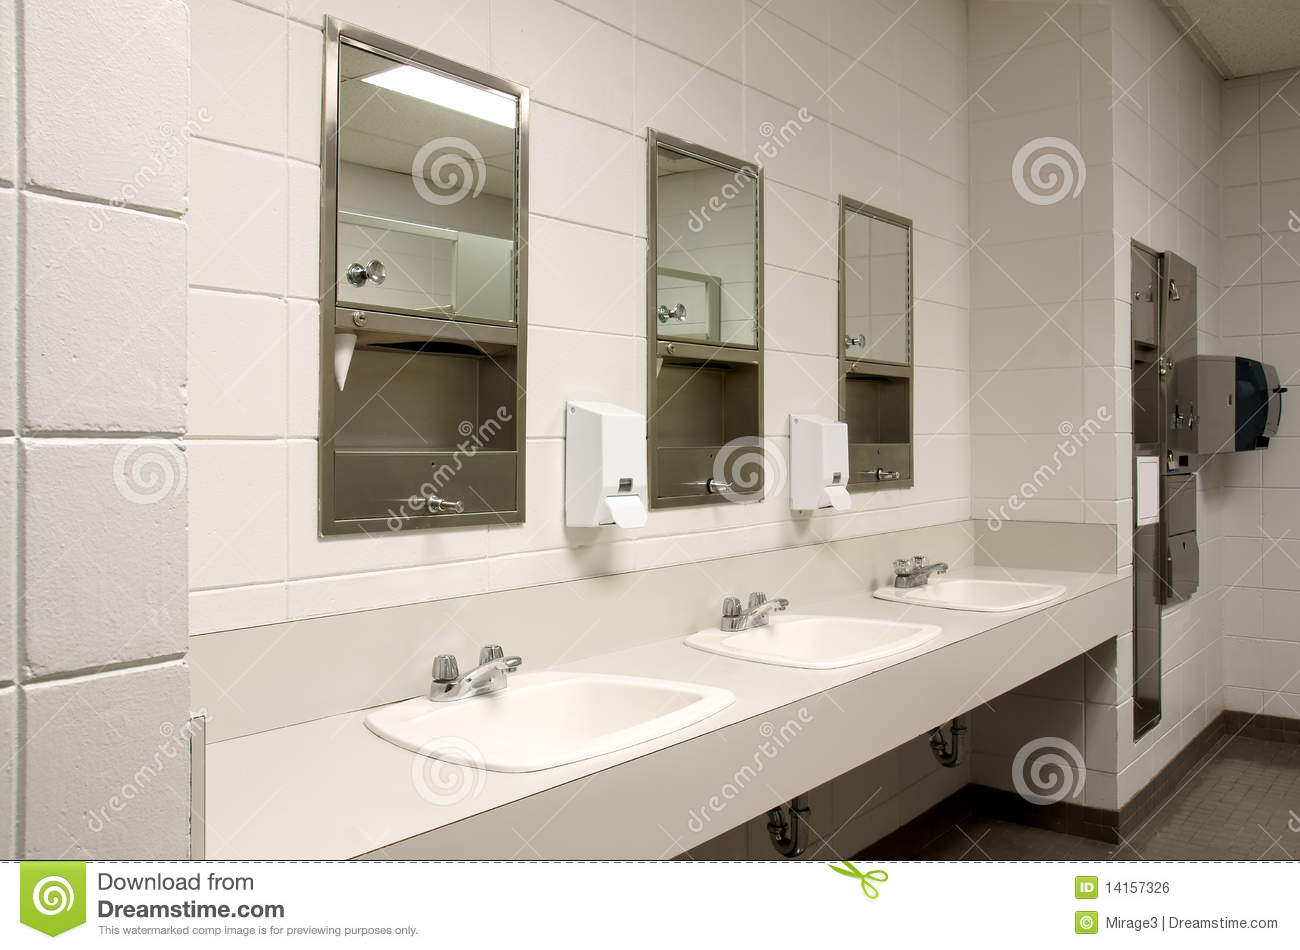 Diseno De Un Baño Publico:School Bathroom Sinks